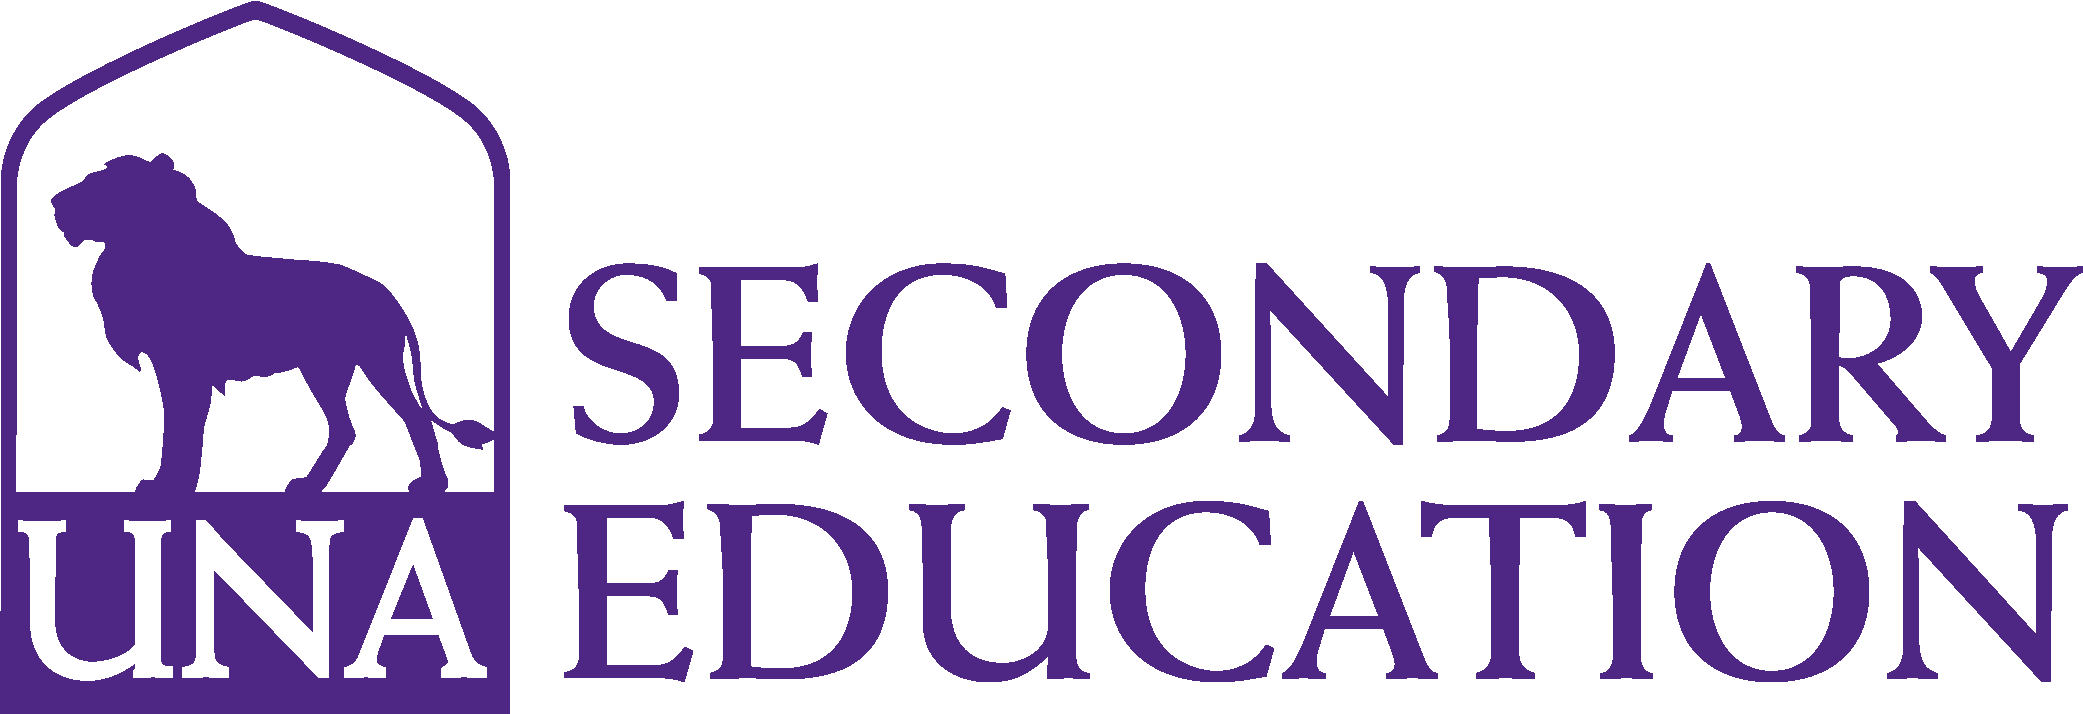 College of Education and Human Services - Secondary Education Logo - Purple - Version 3